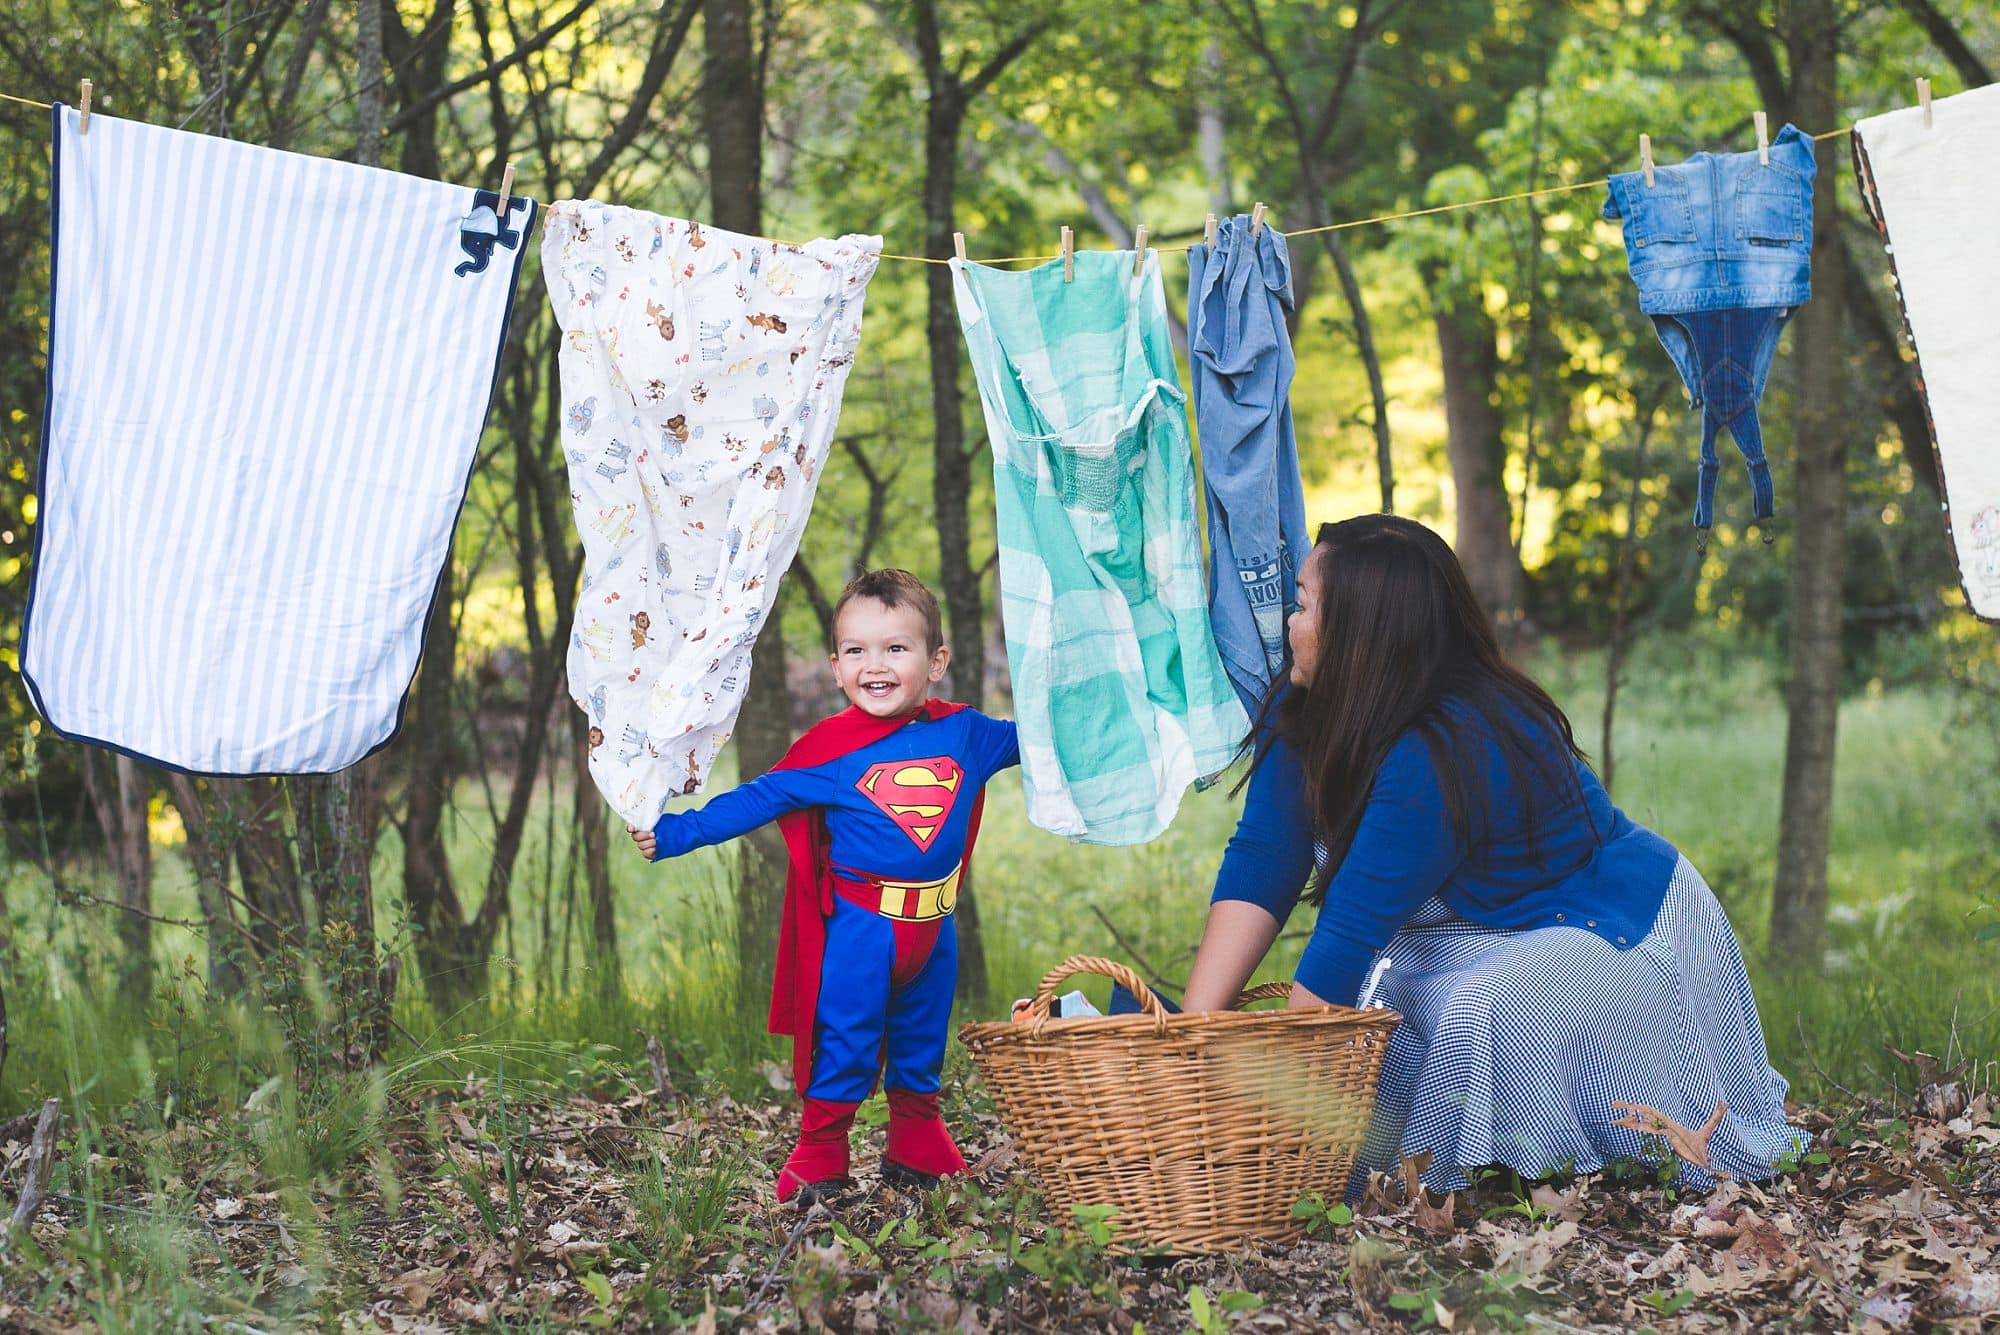 Mommy hanging up the wash on a laundry line with the help of superman toddler in costume